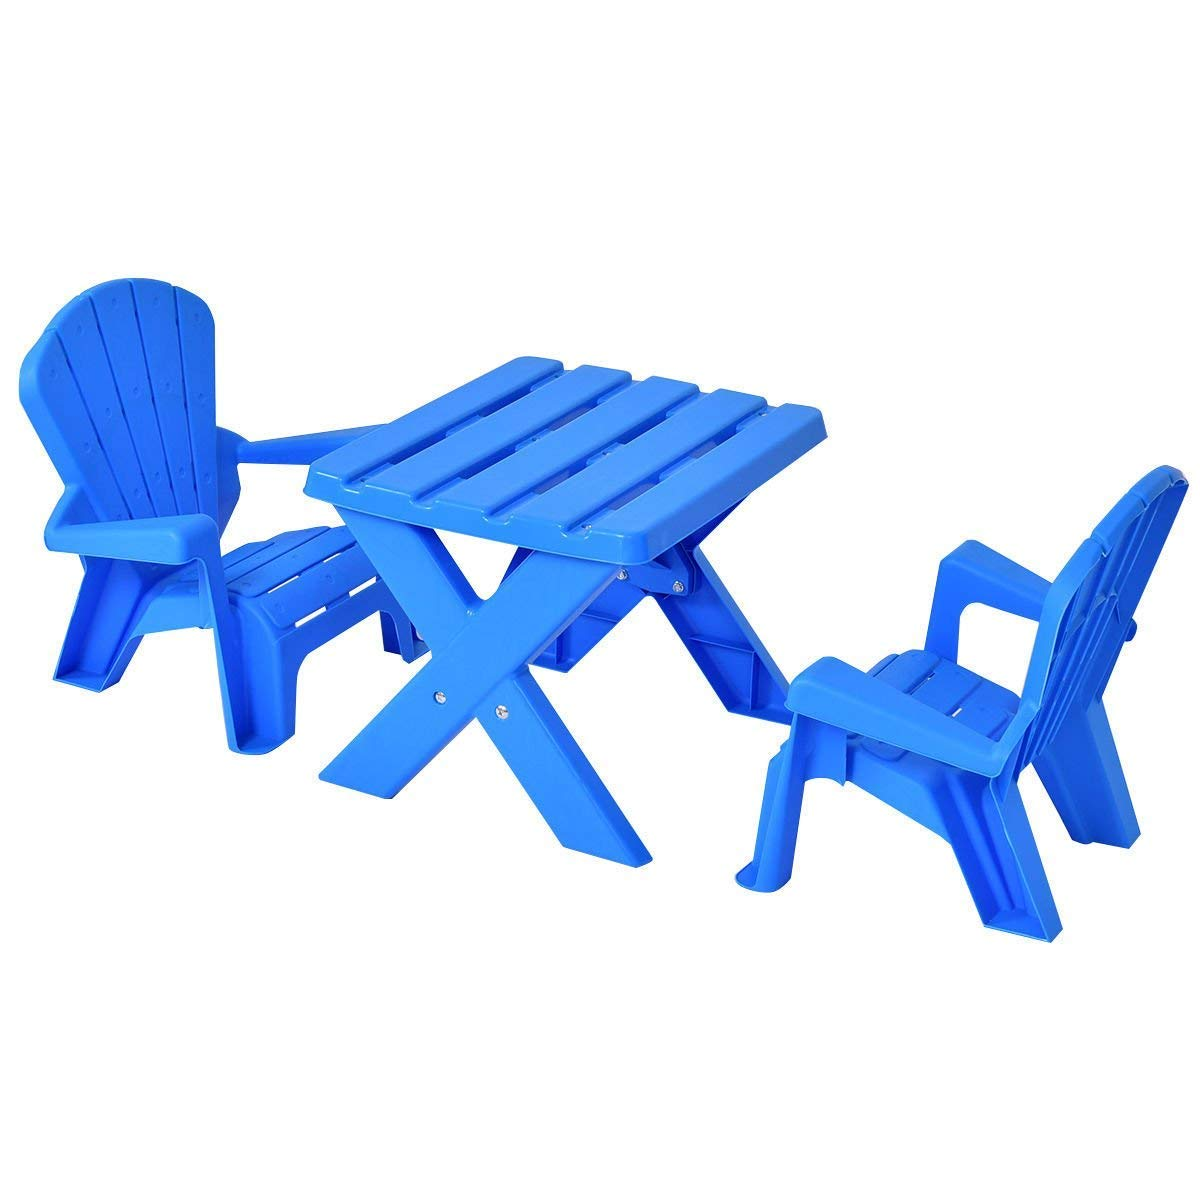 HONEY JOY Kids Plastic Table and 2 Chairs Set, Adirondack Chair, Patio Activity Craft Table Set (Blue) by HONEY JOY (Image #1)